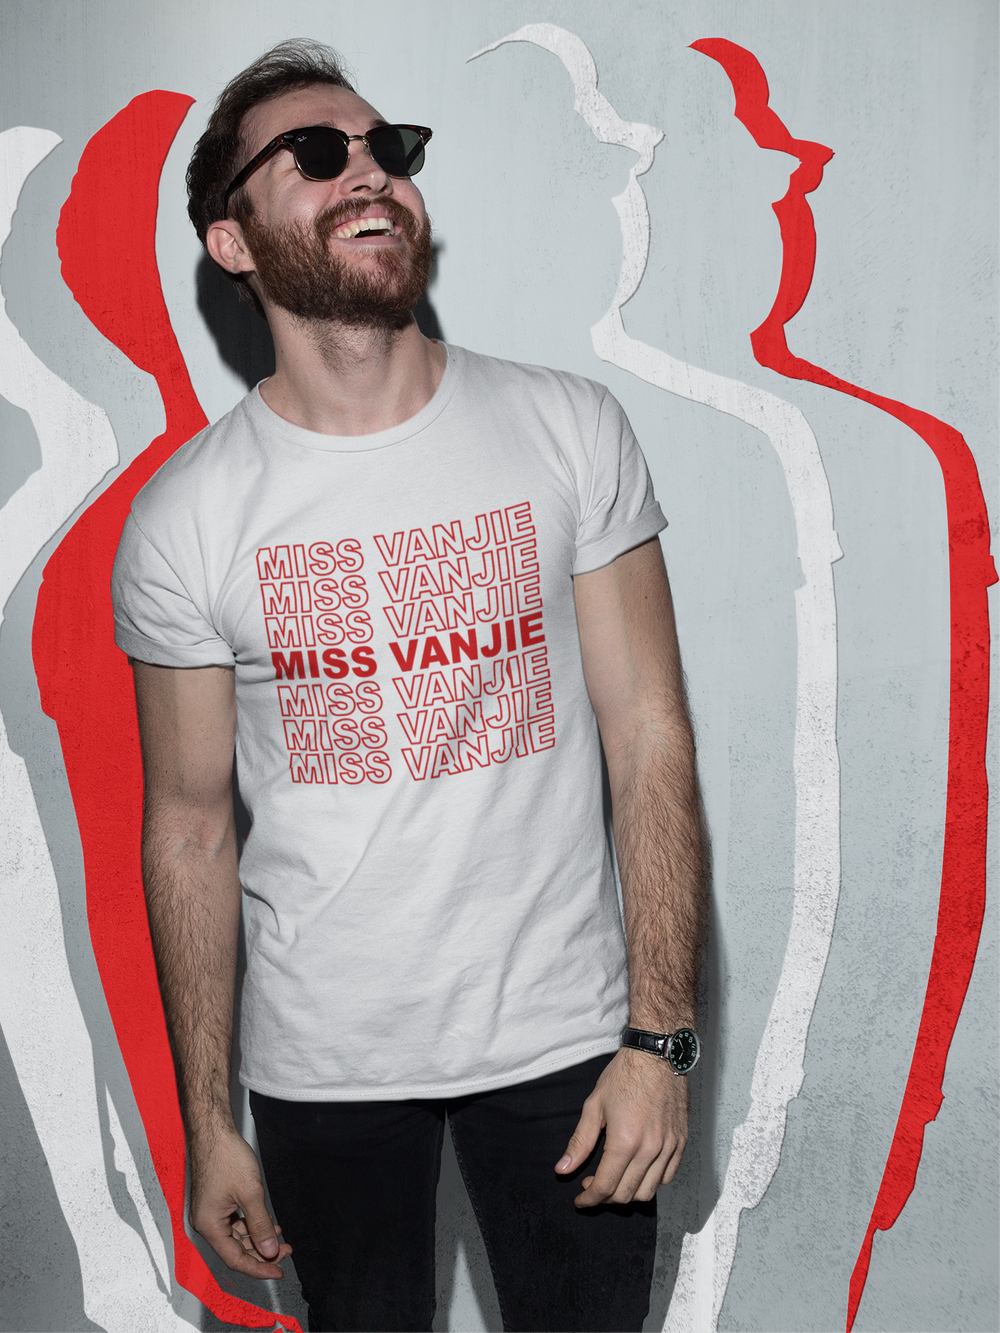 Miss Vanjie Shirt - RuPaul's Drag Race T-Shirt